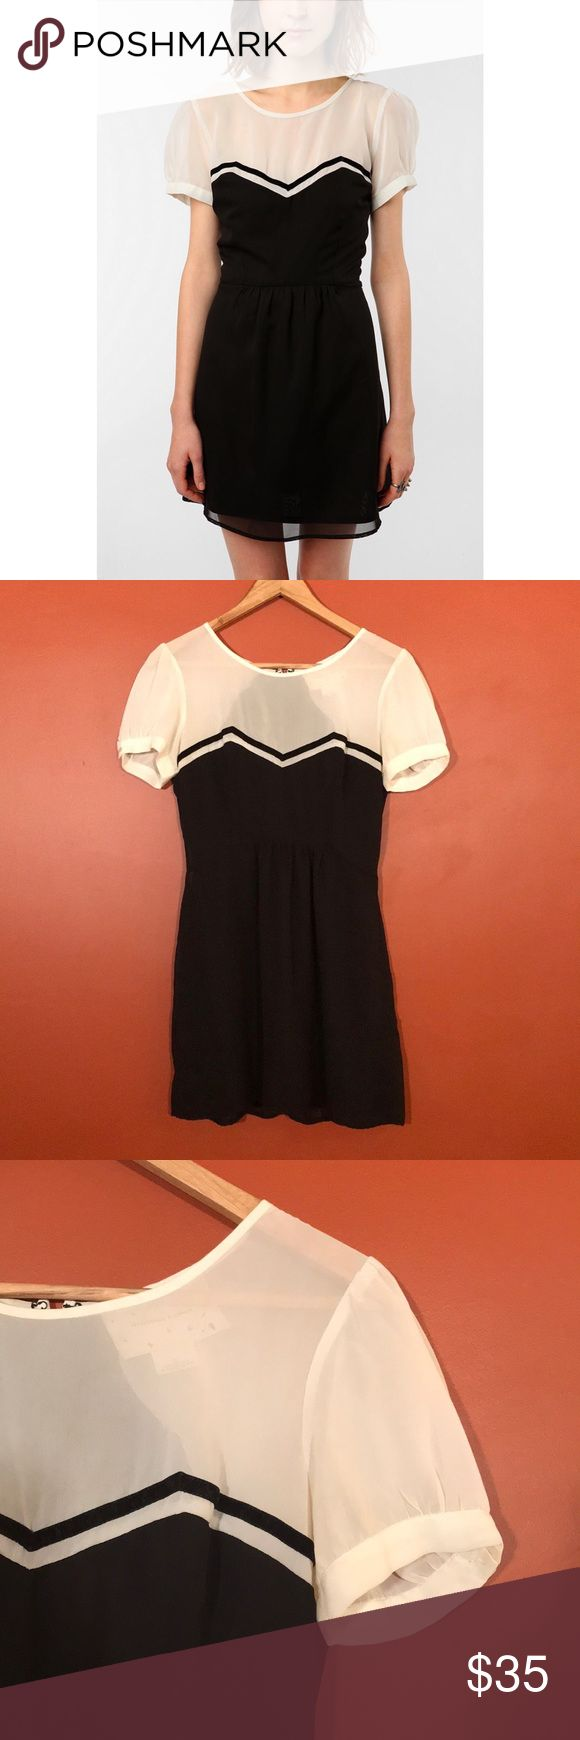 "Urban Outfitters Coincidence & Chance B&W Dress Urban Outfitters Coincidence & Chance Black & White Dress with velvet ribbon detail across chest. Puff sleeves. Lined. Great condition. Chest 18"", length 32"". Urban Outfitters Dresses Mini"